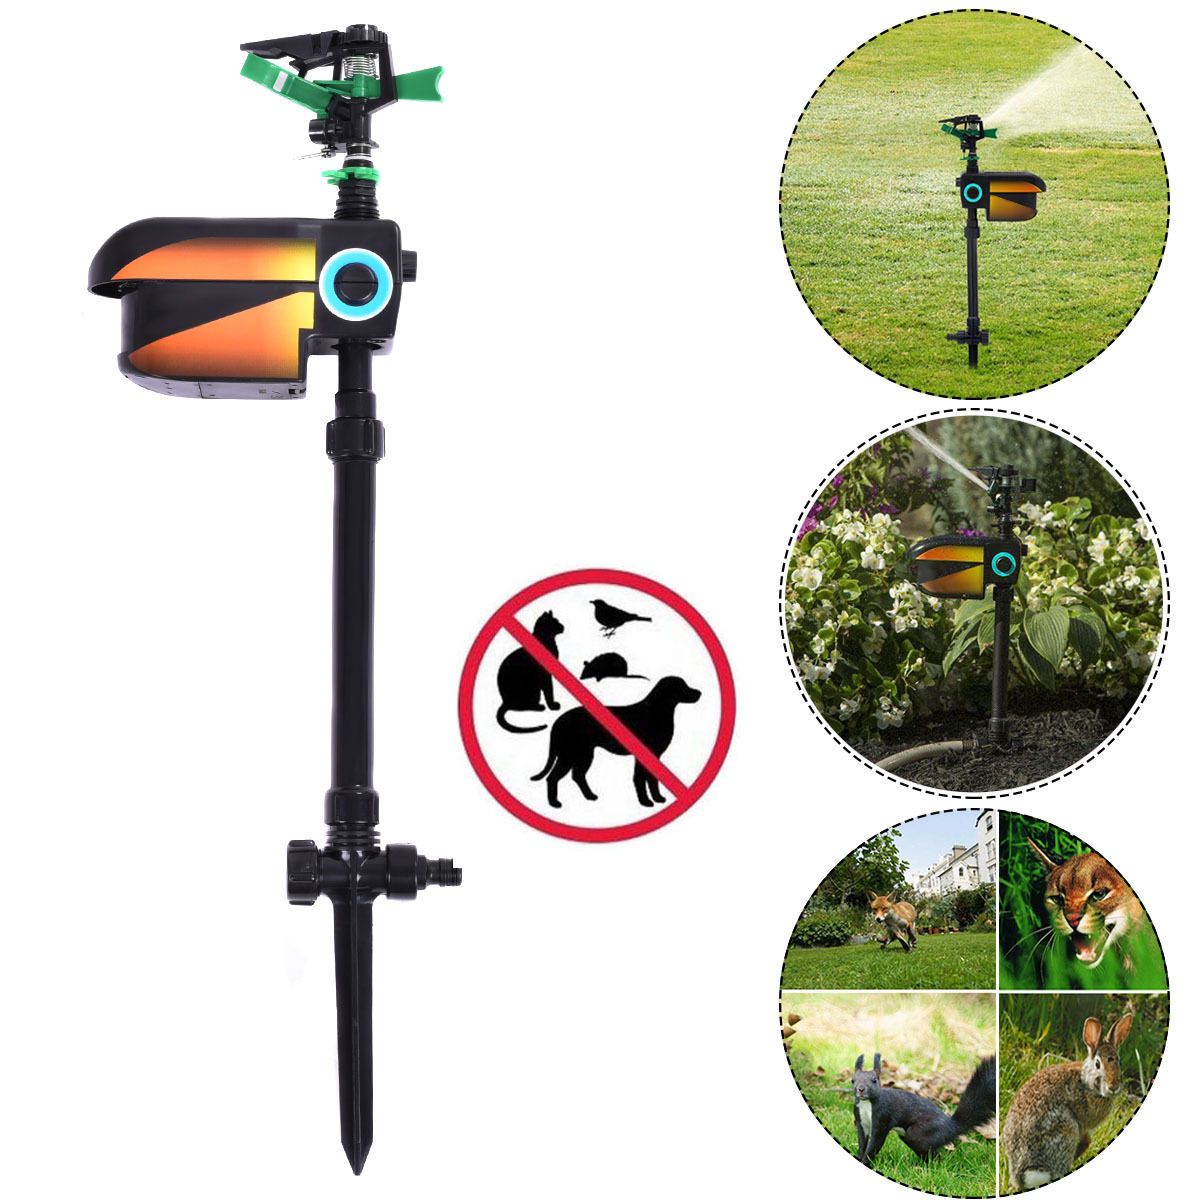 Costway Solar Powered Motion Activated Animal Repellent Sprinkler Black by Costway